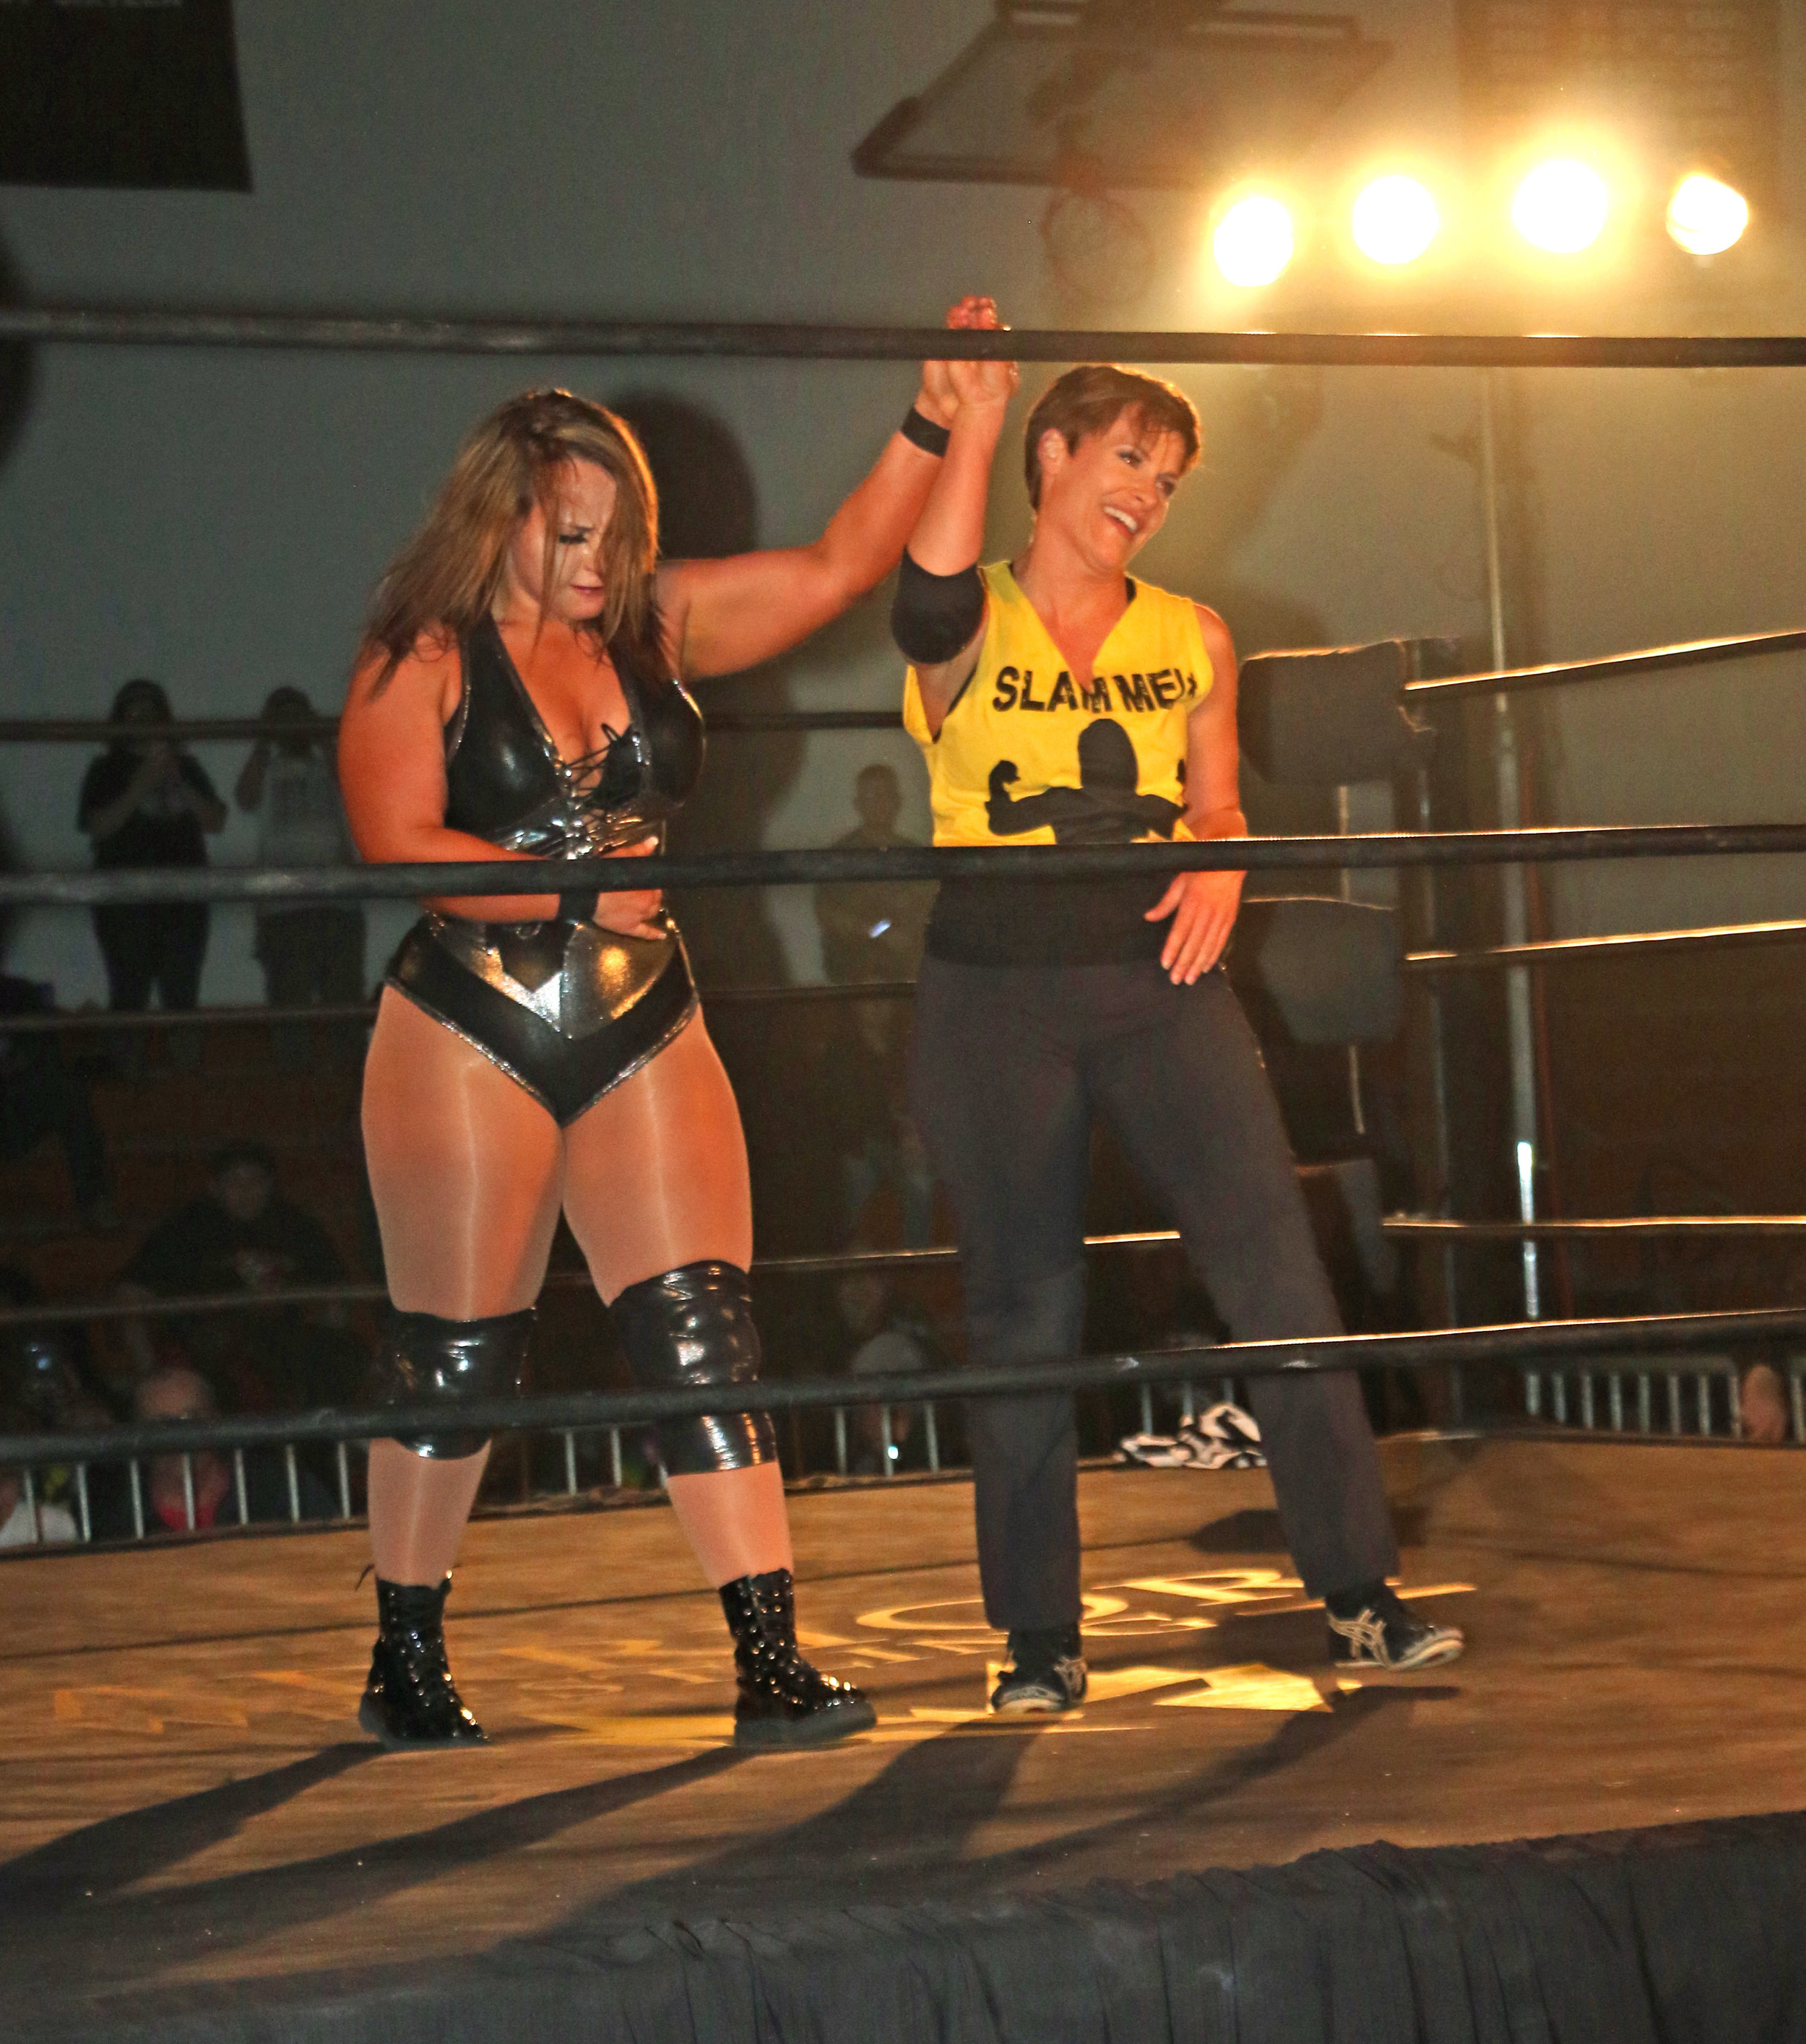 Molly Holly, right, has a moment with Jordynne Grace.